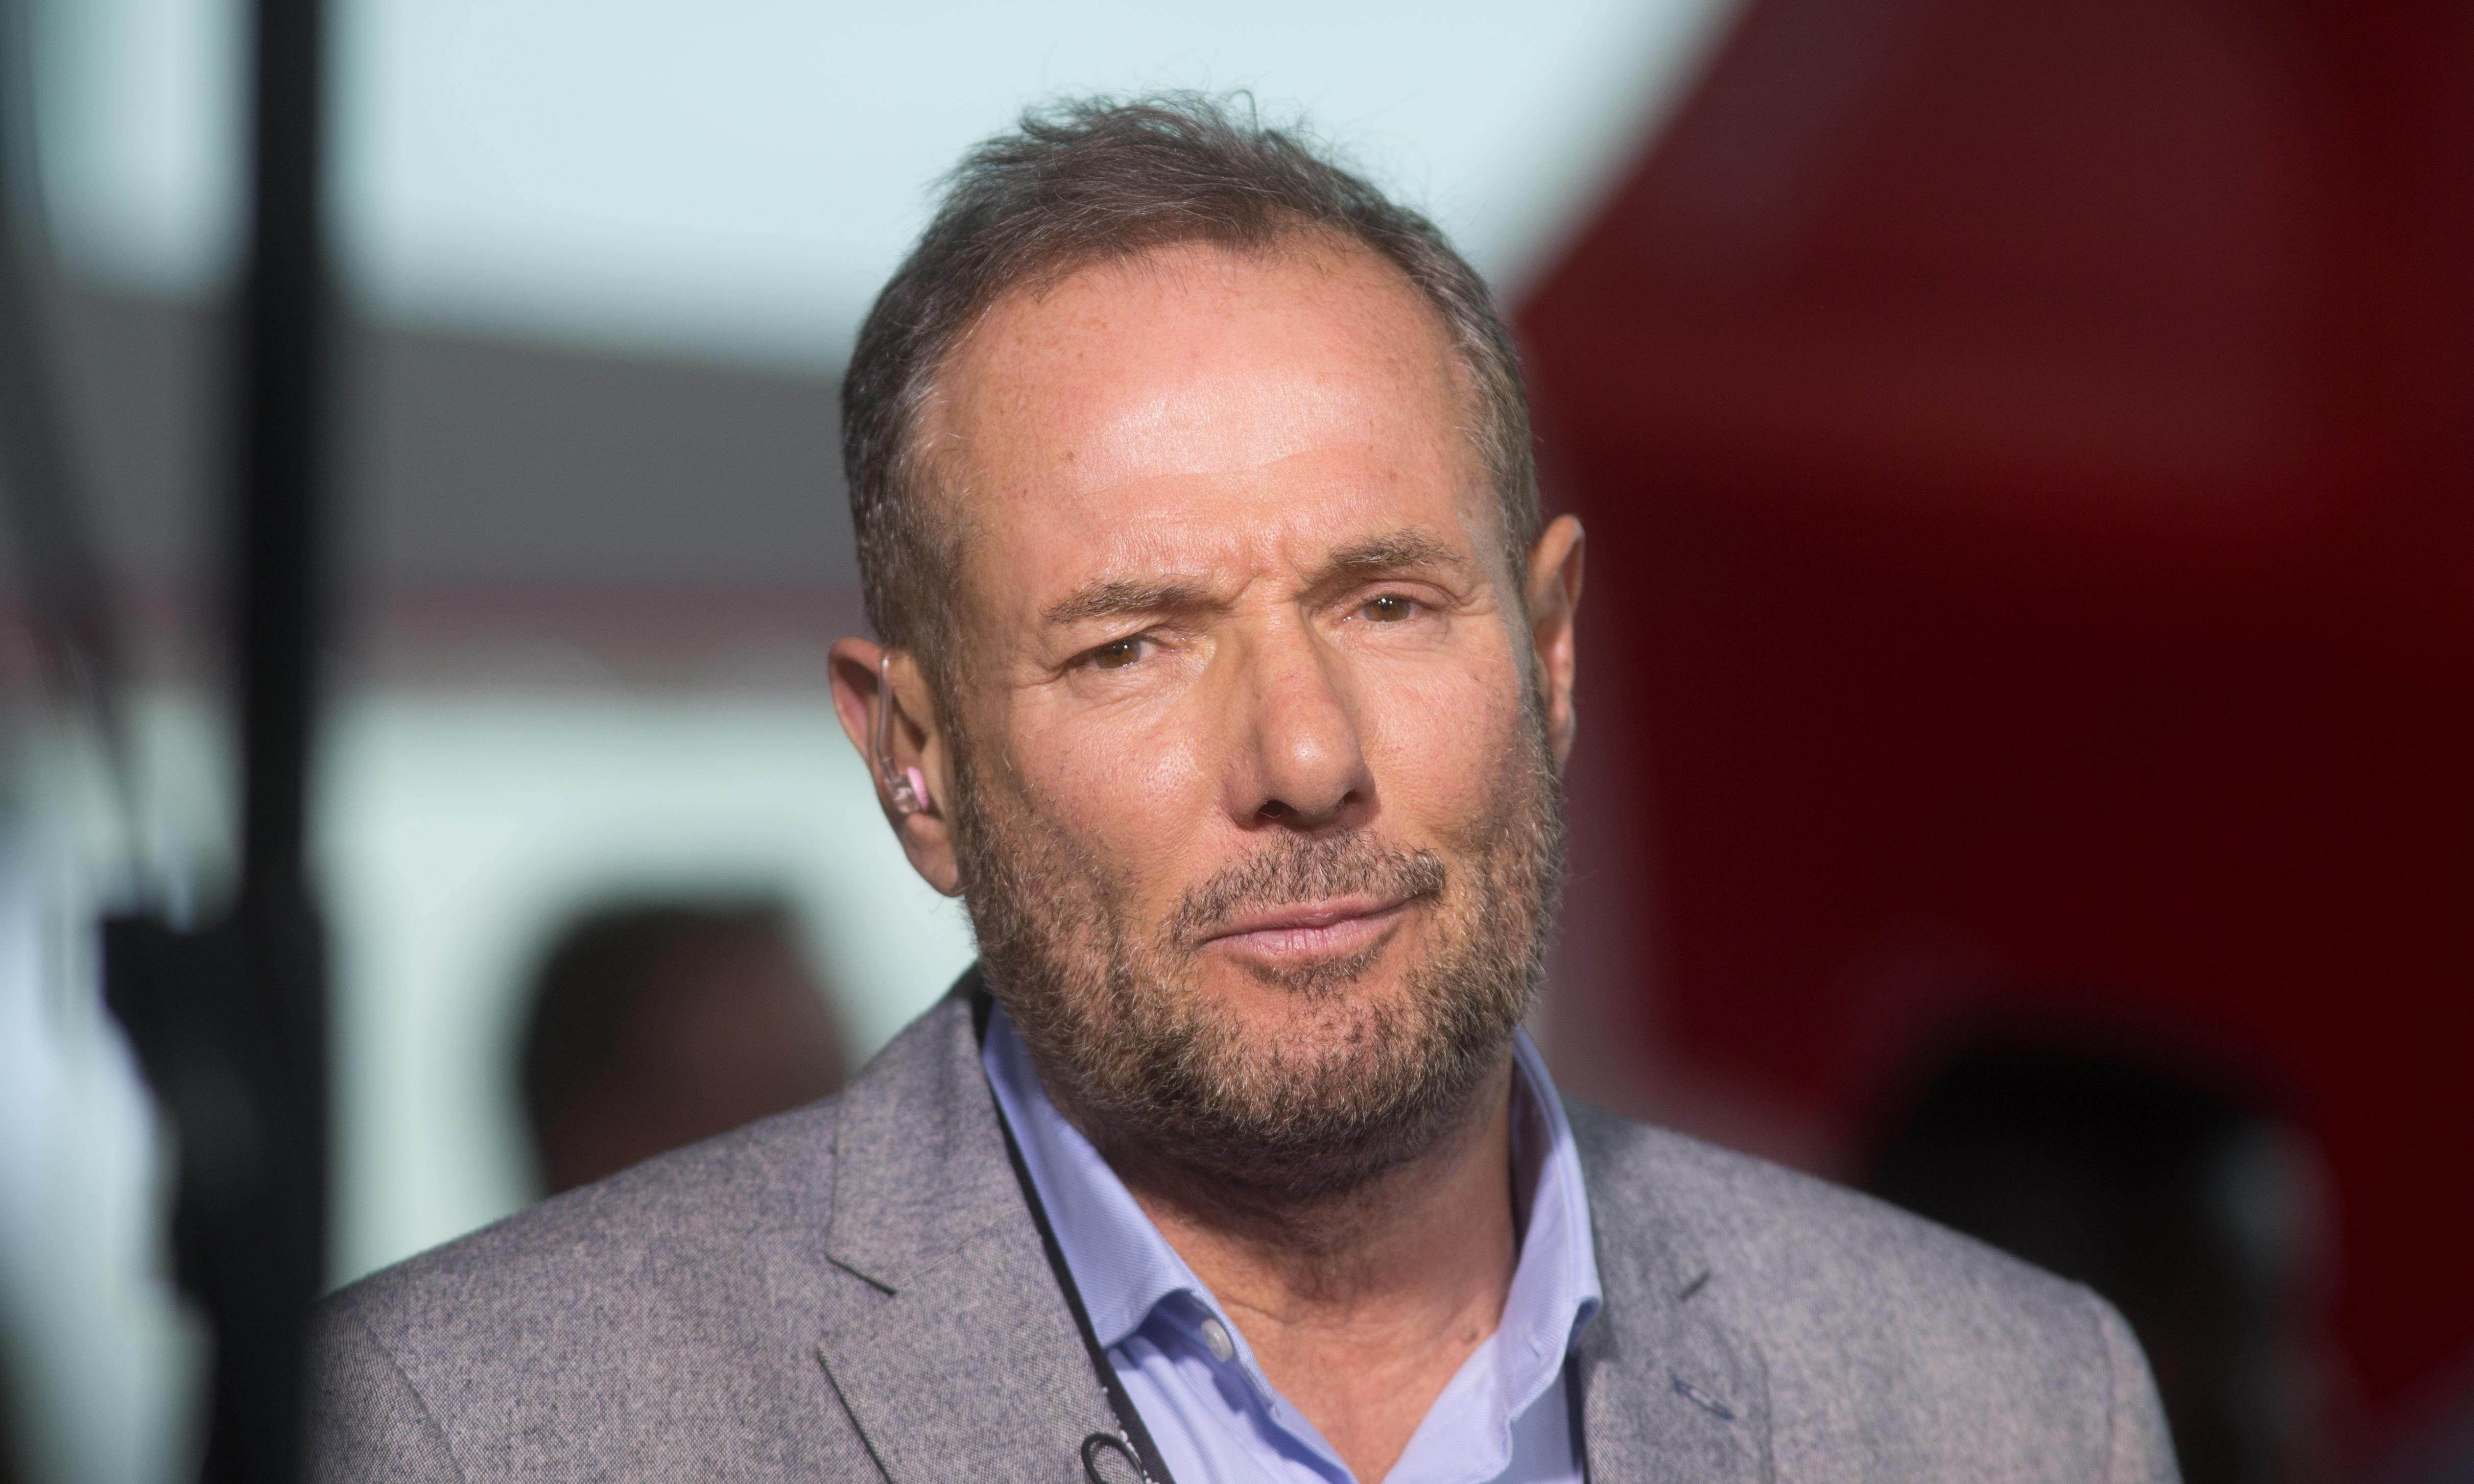 'He did a lot of damage': Liverpool reacts to return of Derek Hatton